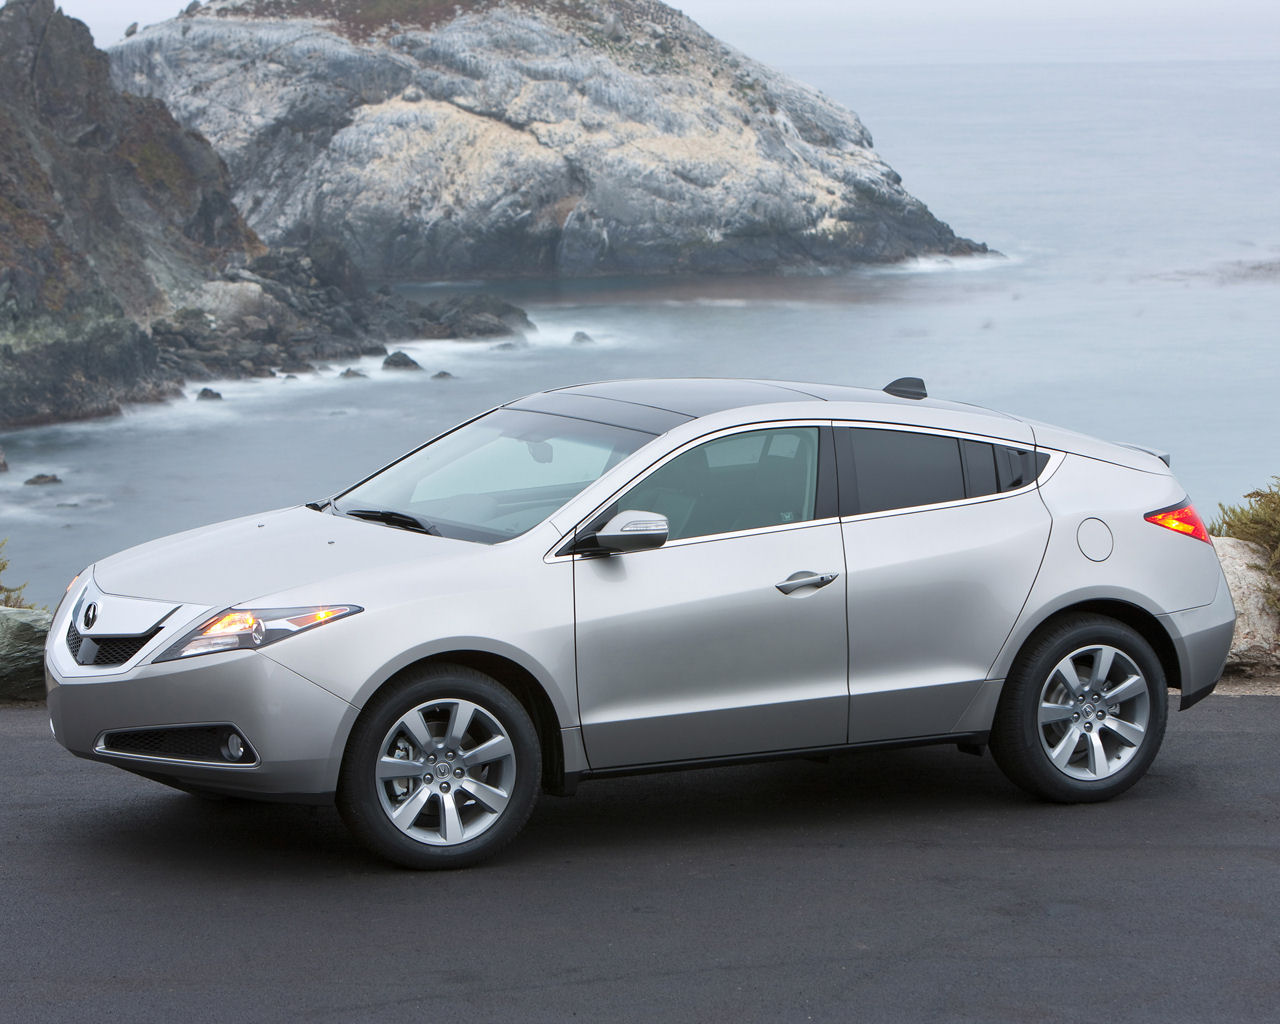 technology at acura pkg awd detail autopark new crossover rdx awdwtechnologypkg fayetteville w